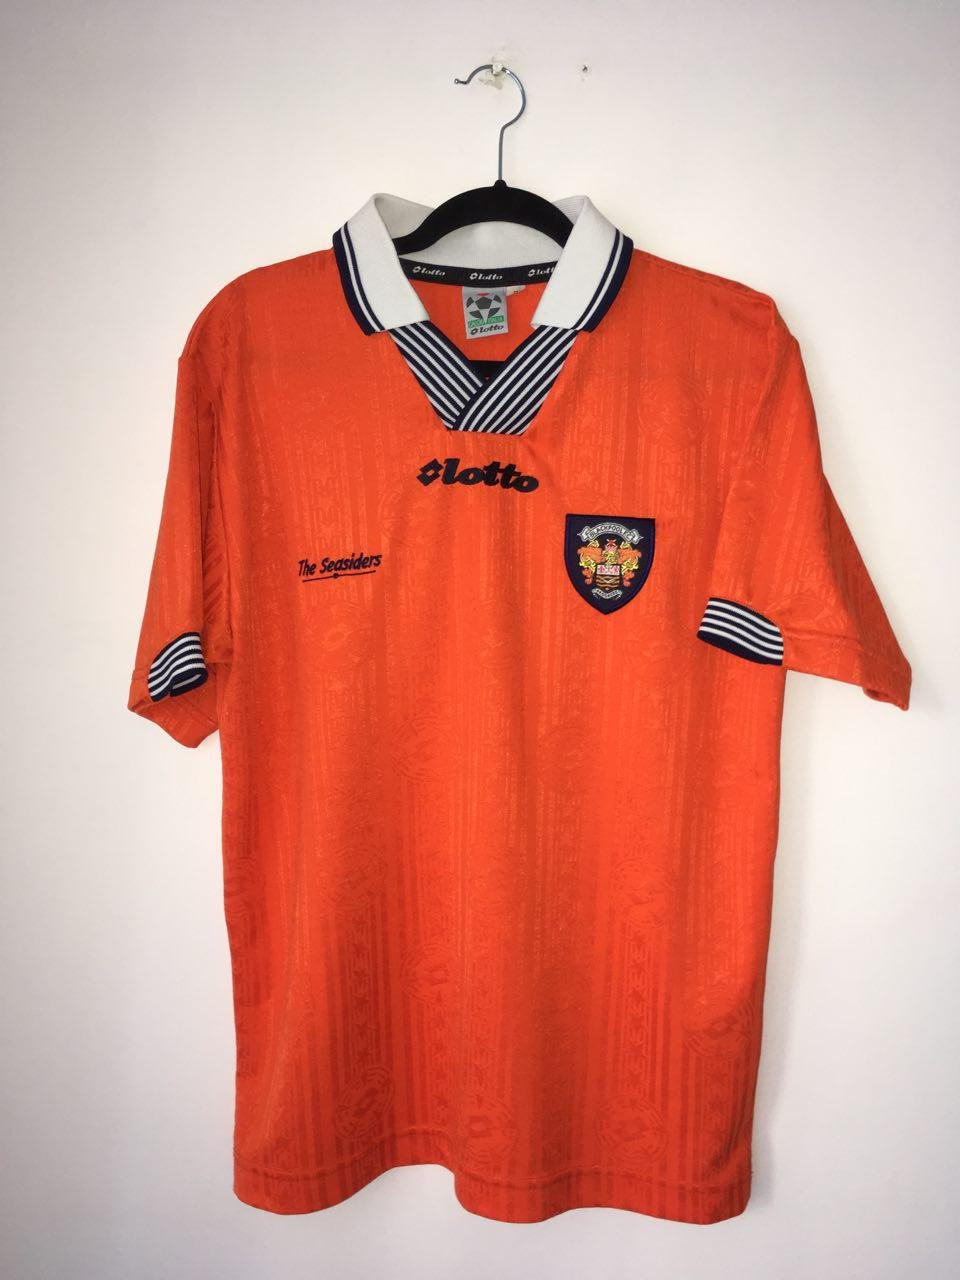 Blackpool Home Football Shirt 1997 1999